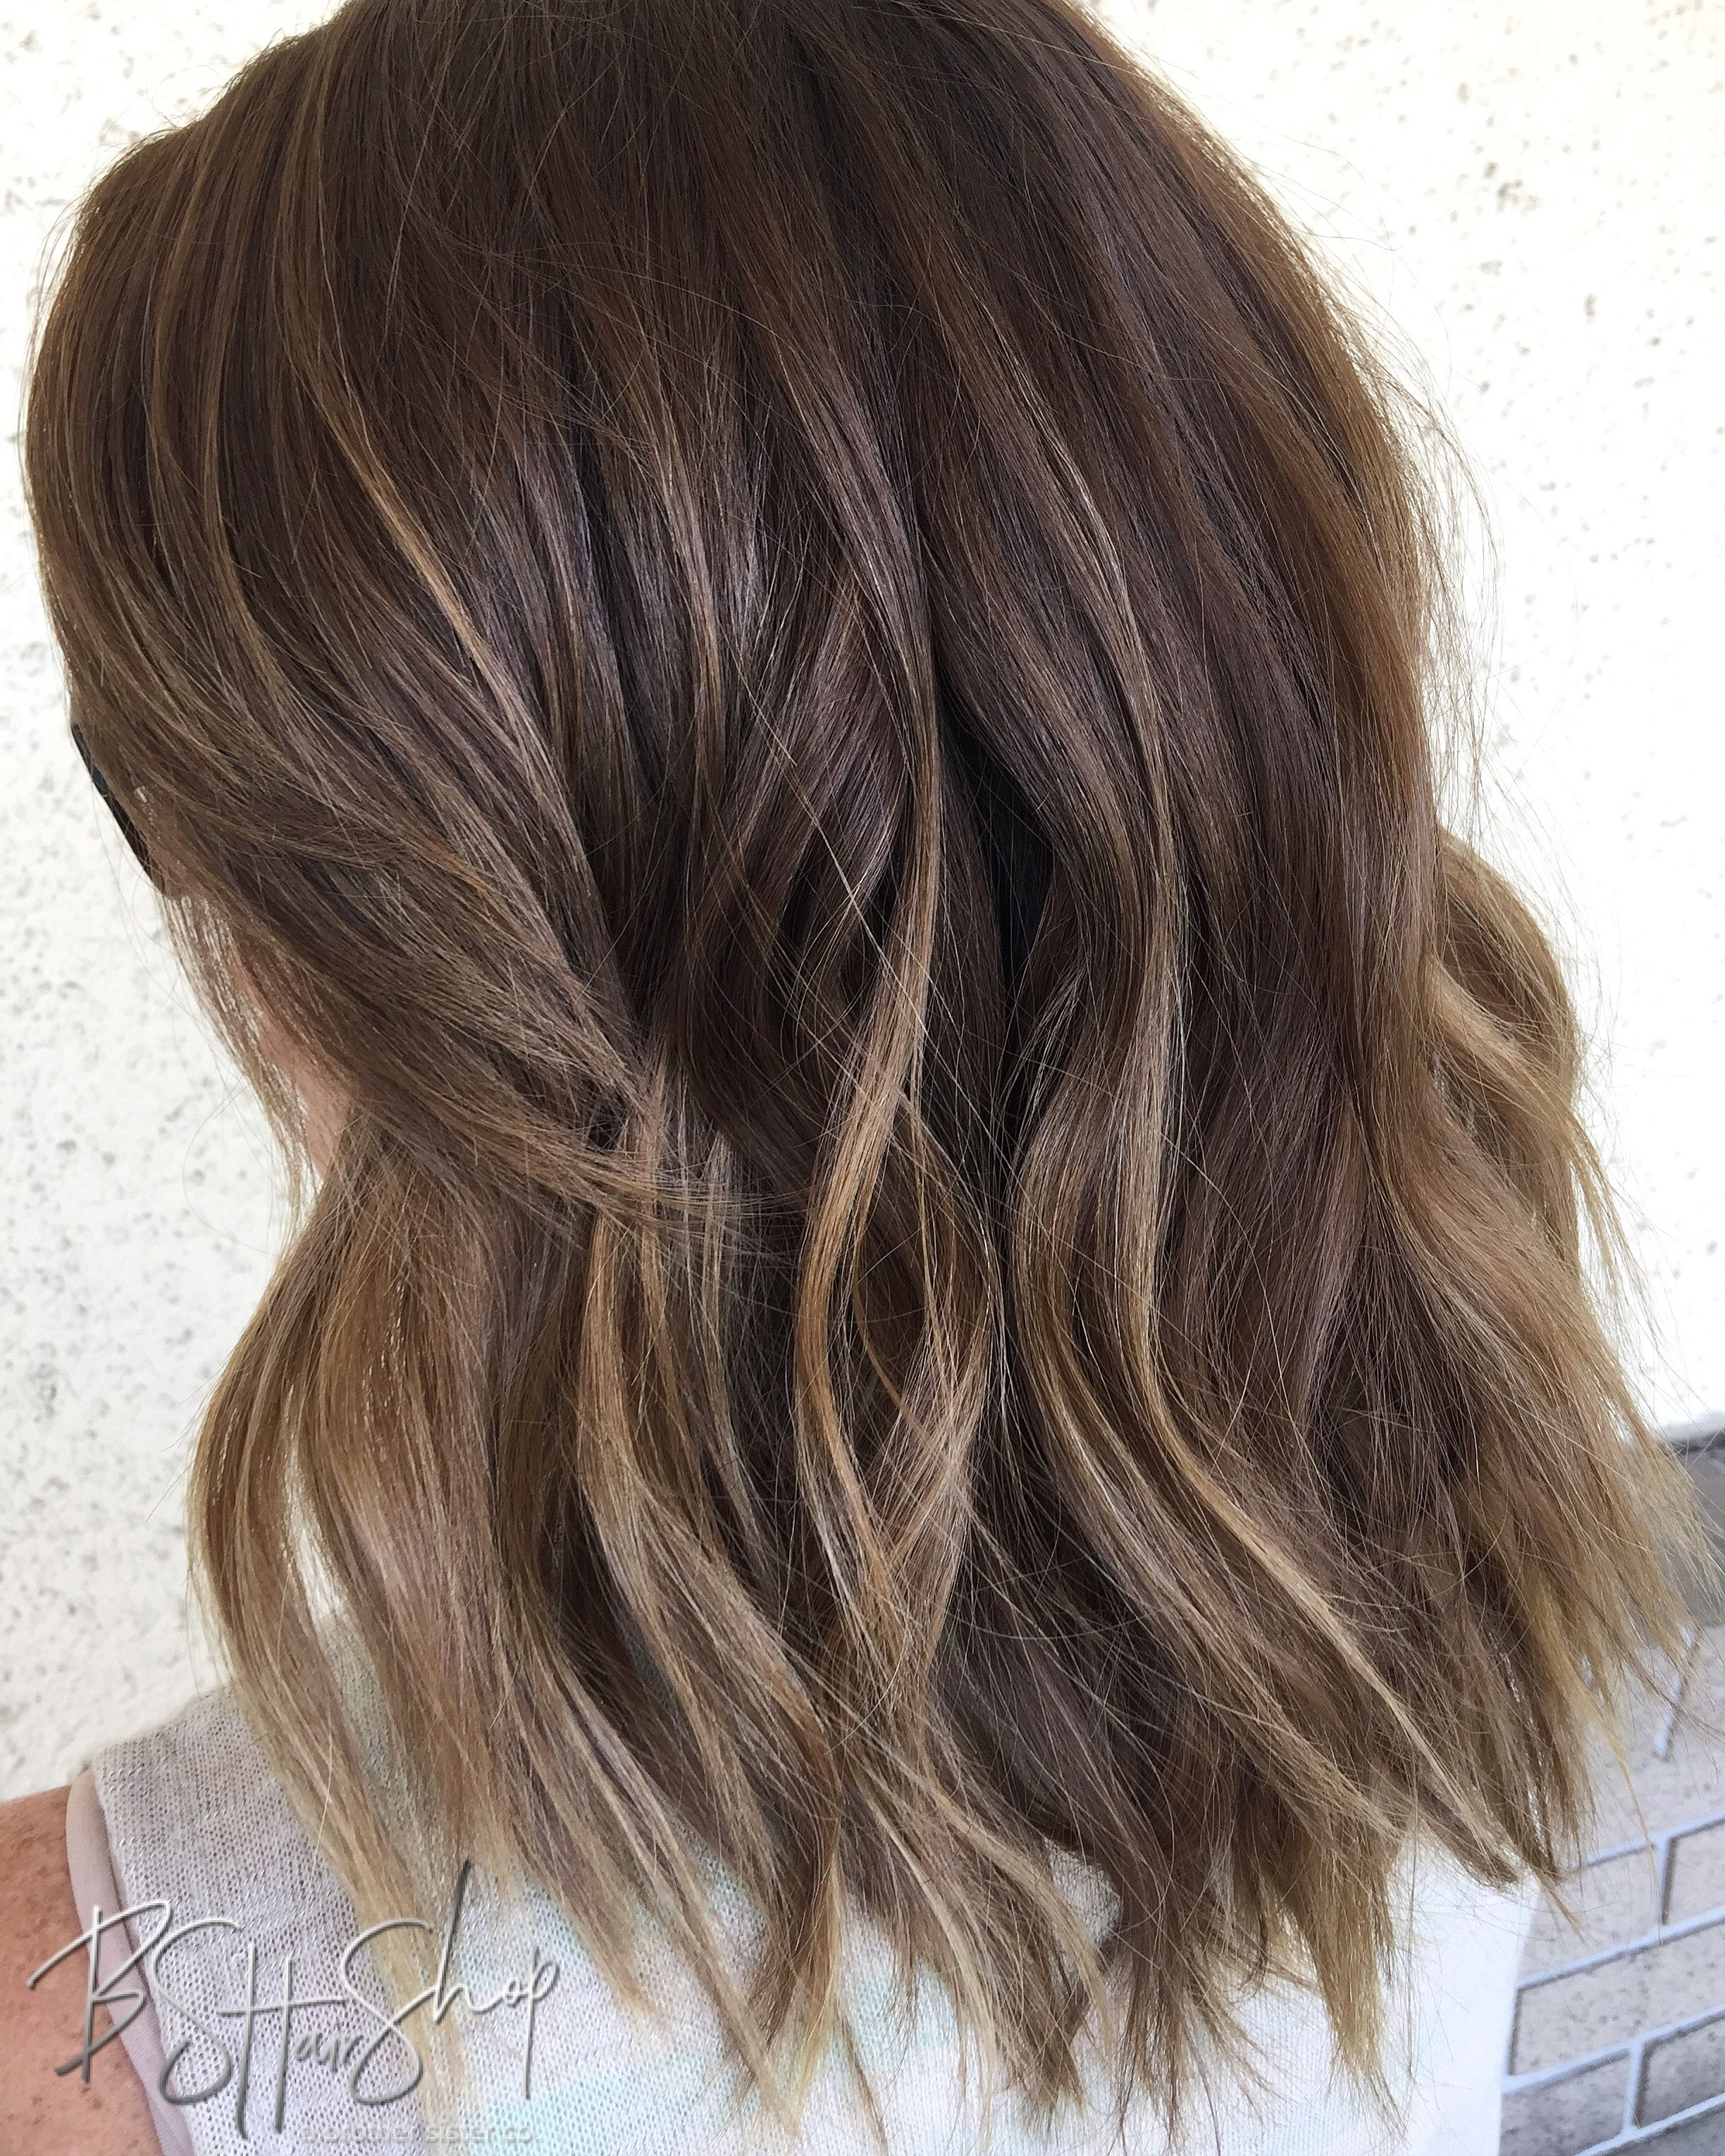 Brunette And Caramel Blonde Subtle Balayage And Textured Beachy Lob Mid Length Hair Subtle Balayage Brunette Black Hair Balayage Hair Lengths